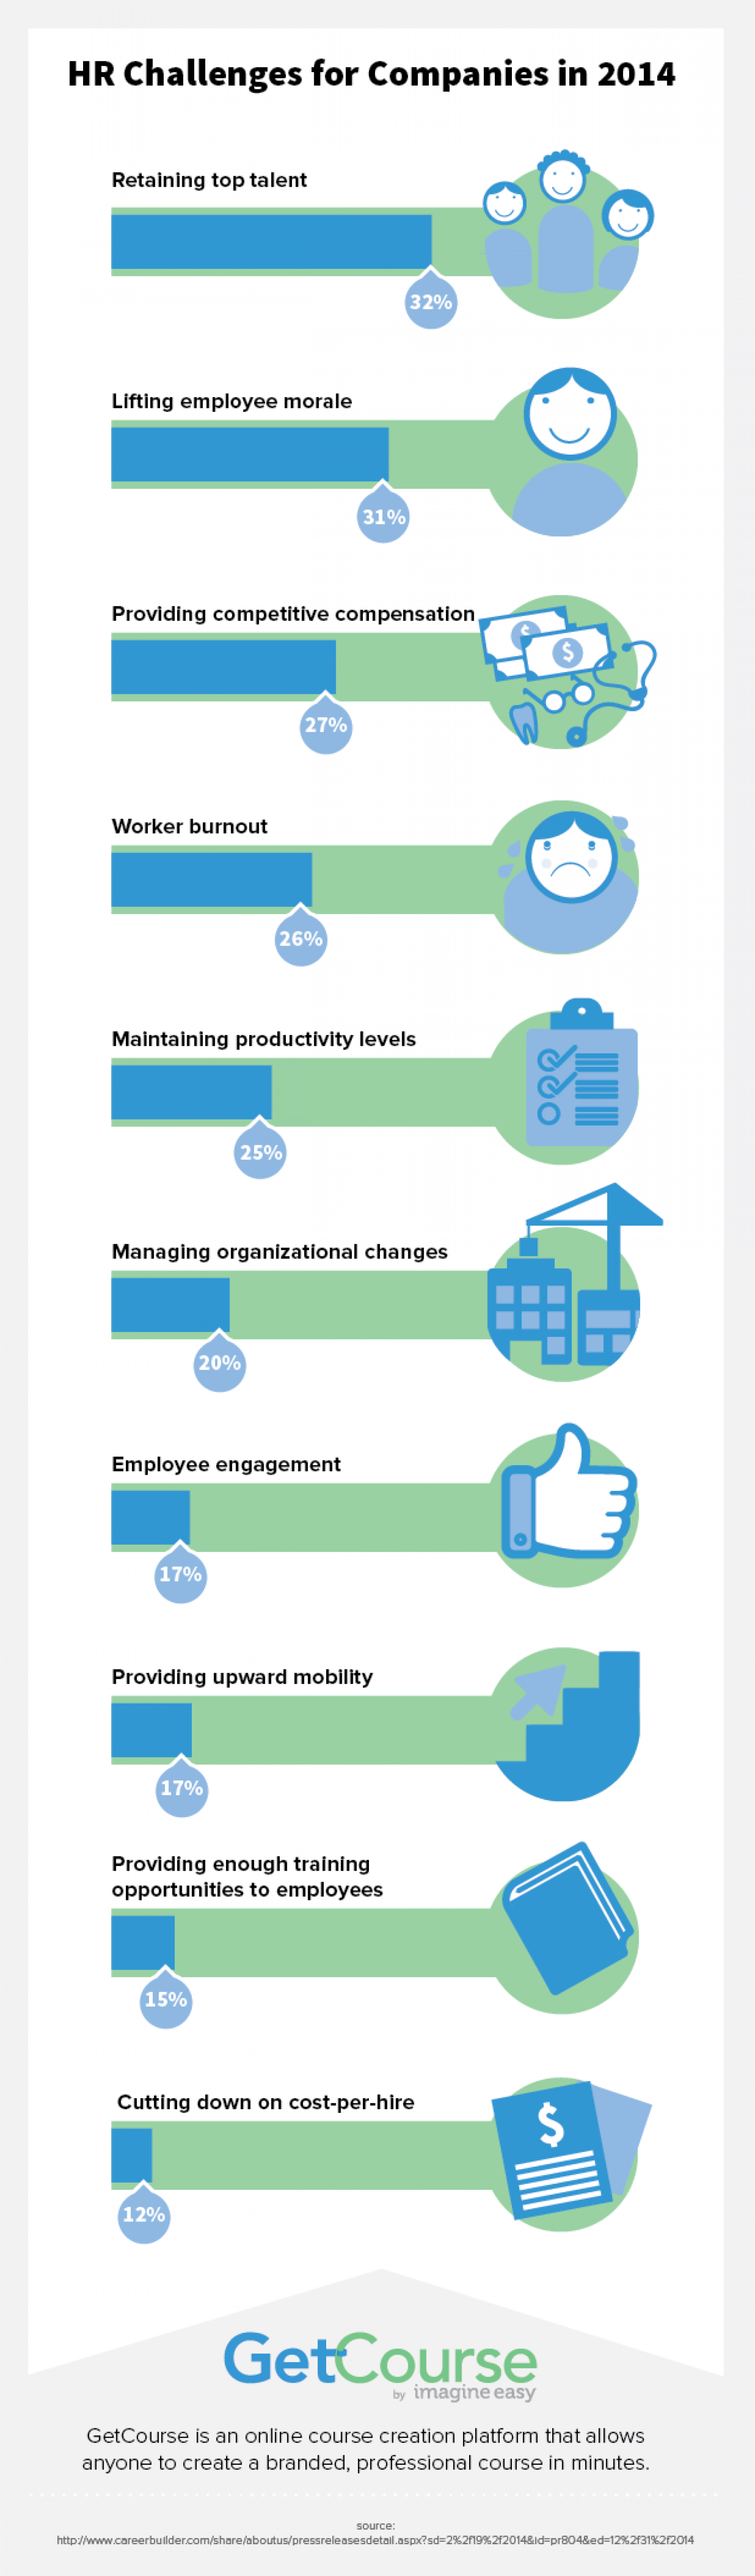 HR Challenges for Companies in 2014  Infographic